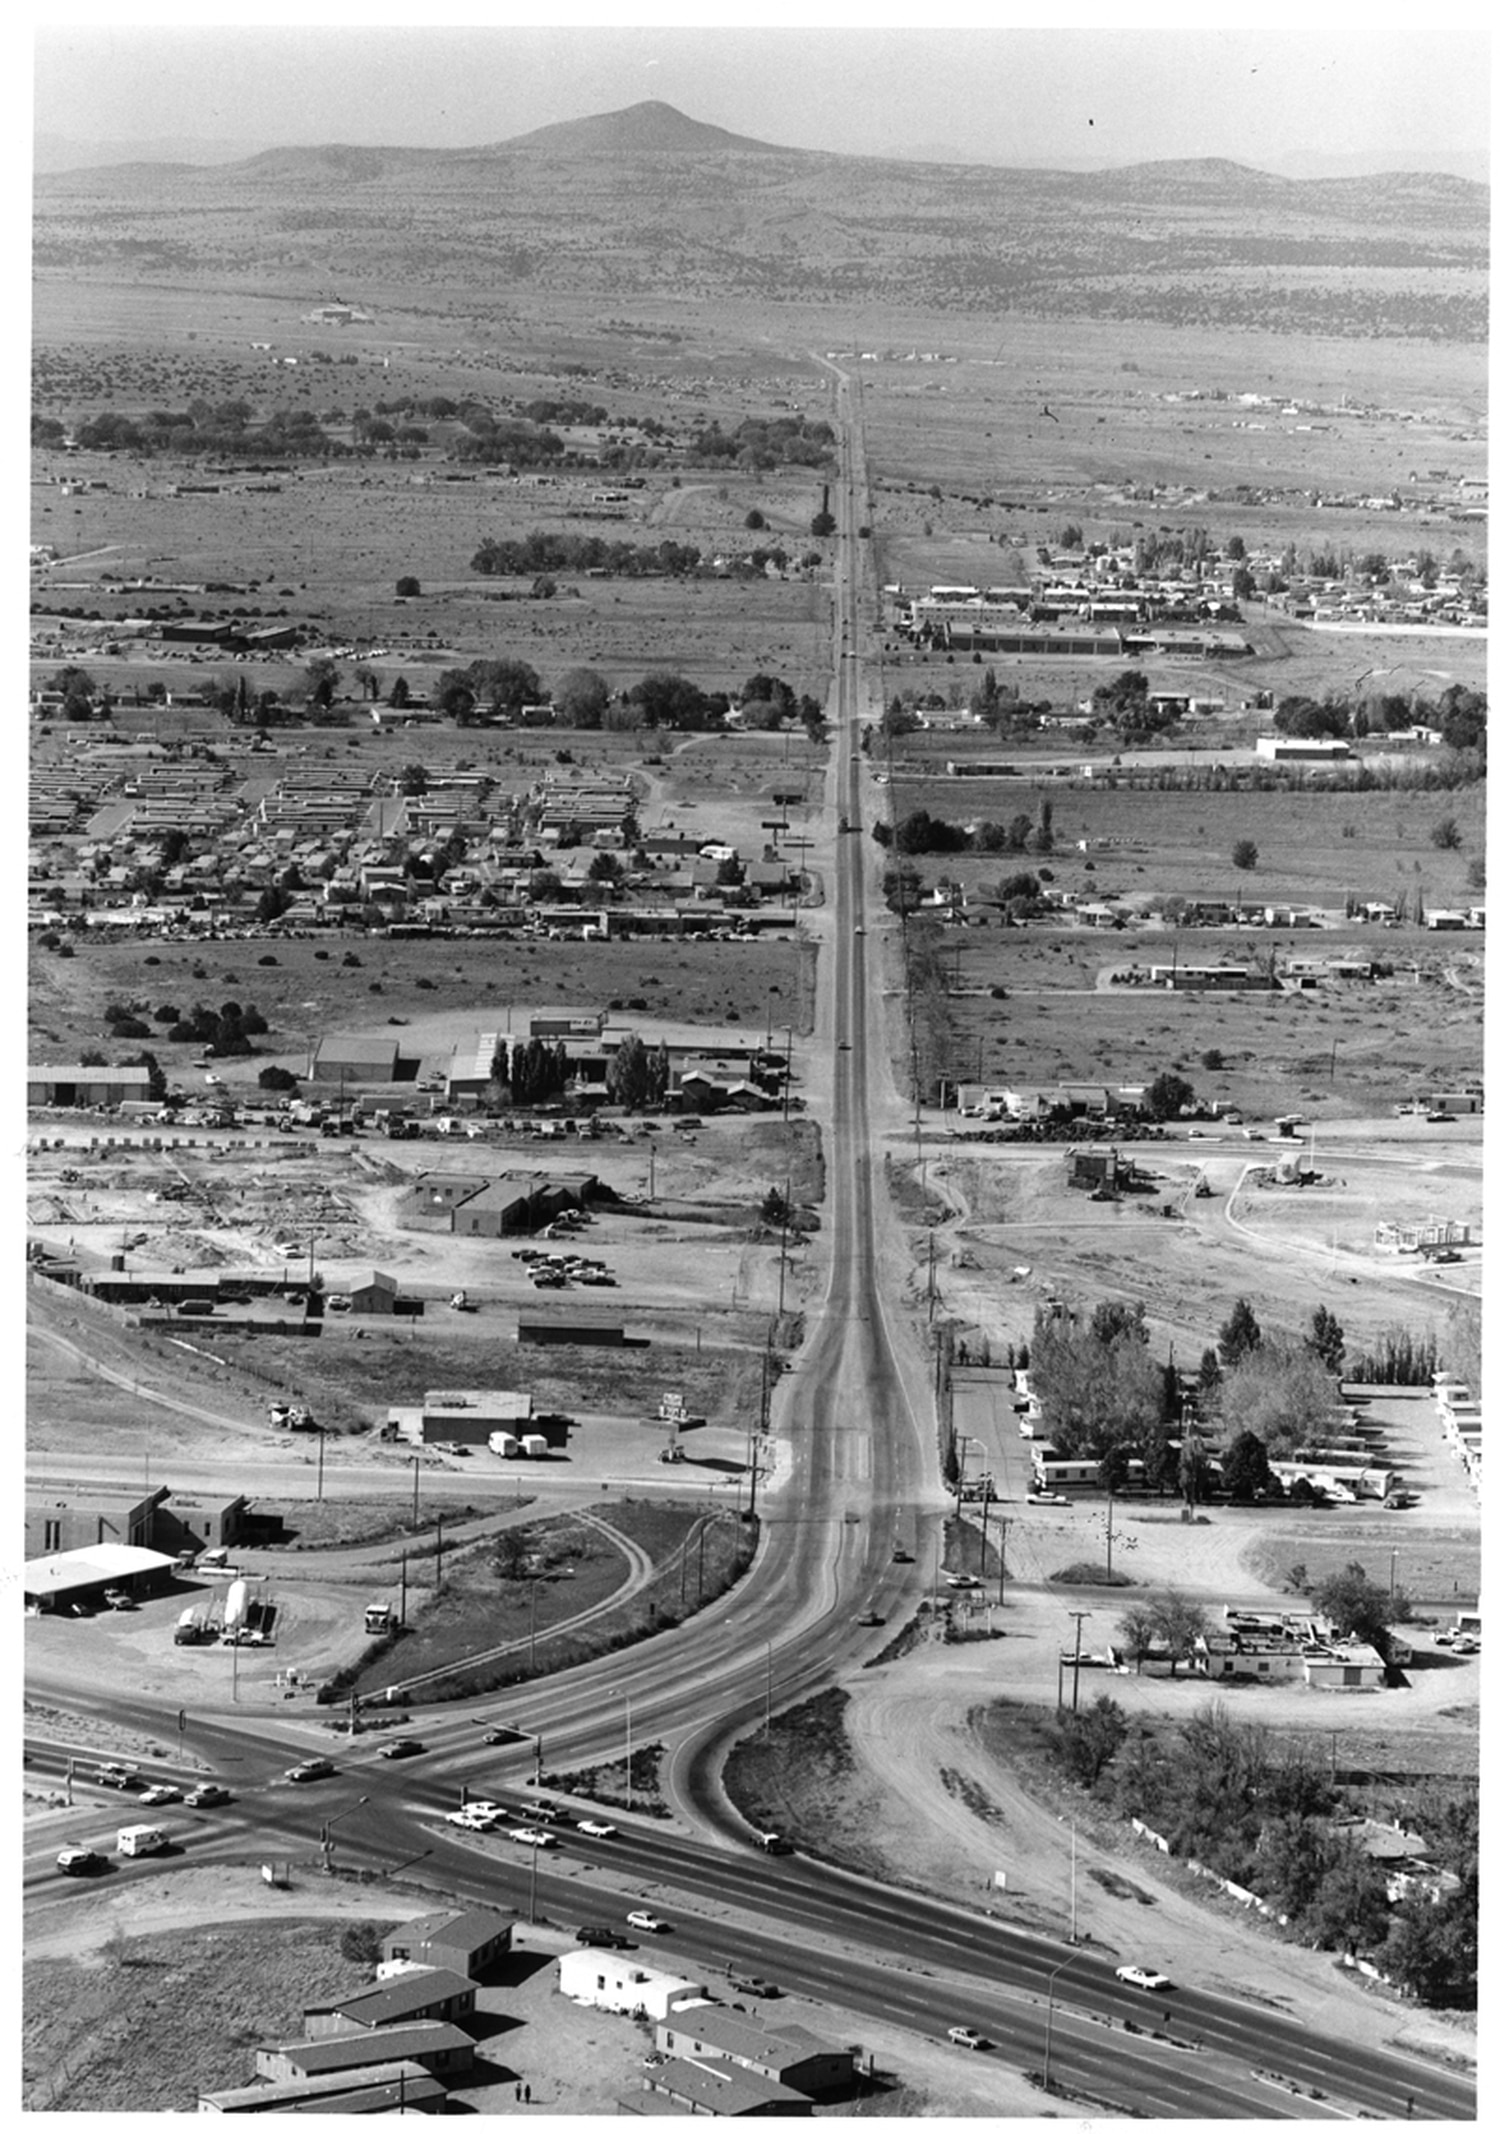 Remember when Airport Road looked more like this aerial photo from 1983? At bottom left is the intersection with Cerrillos Road.